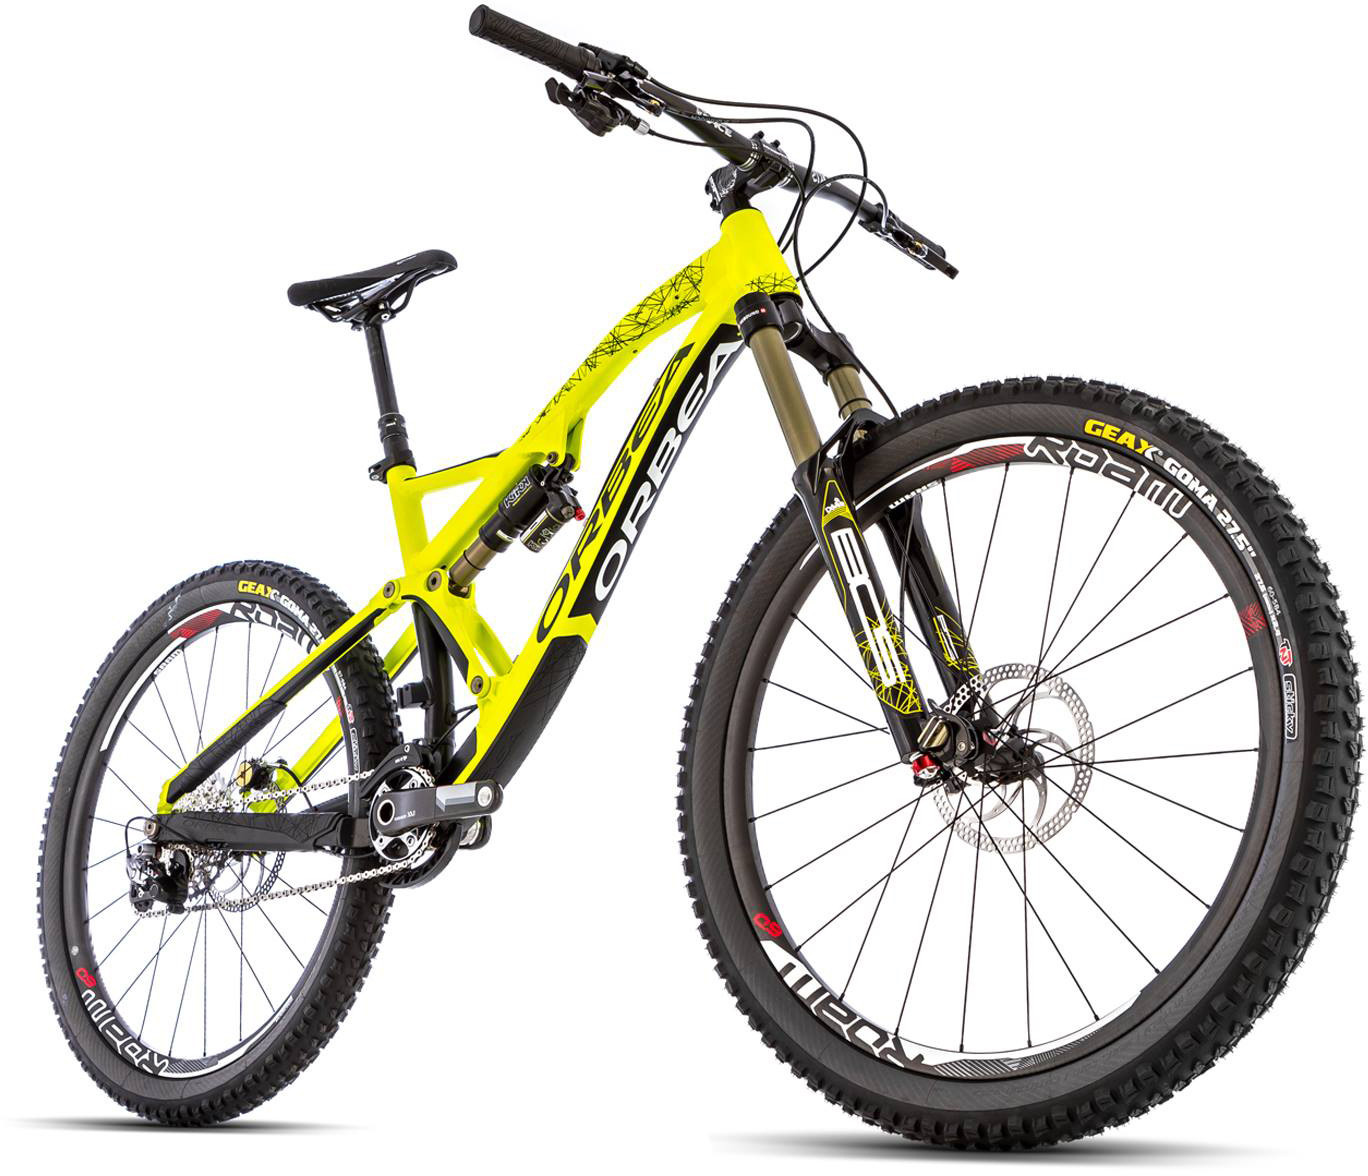 First Look: The All-New Orbea Rallon - Mountain Bikes Feature ...